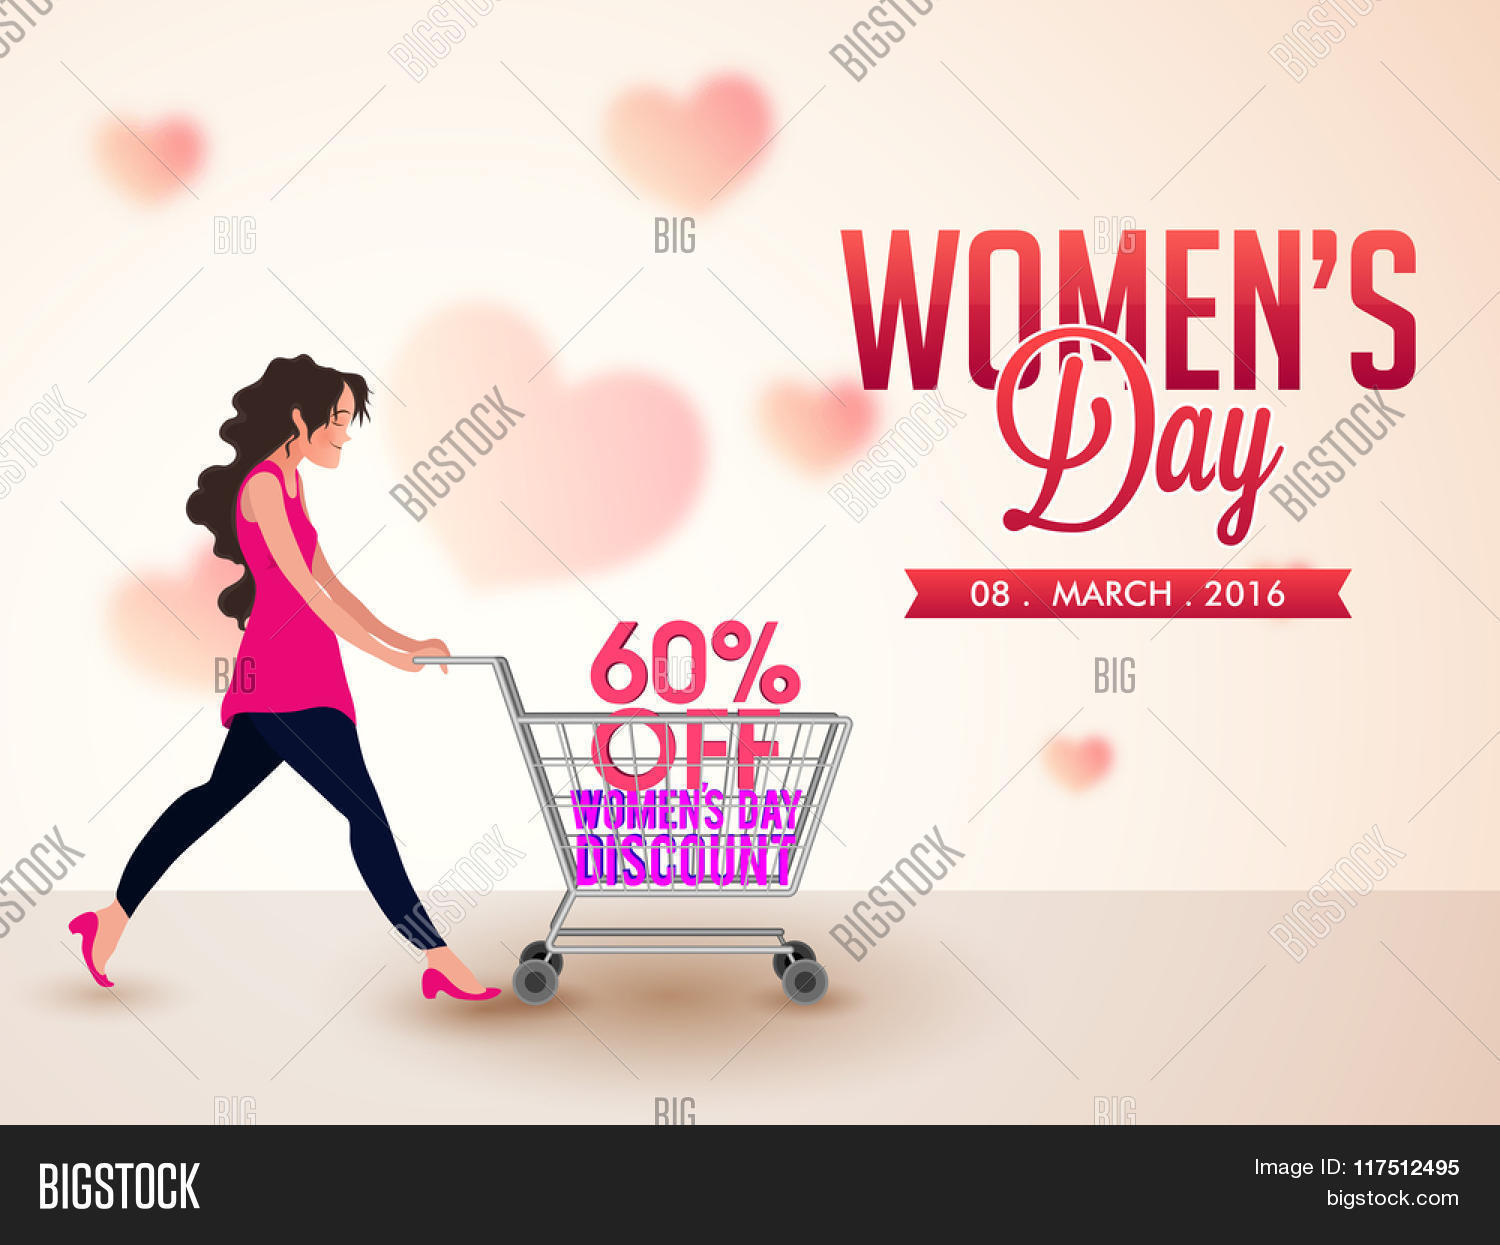 creative poster banner or flyer design of 60% discount creative poster banner or flyer design of 60% discount offer on occasion